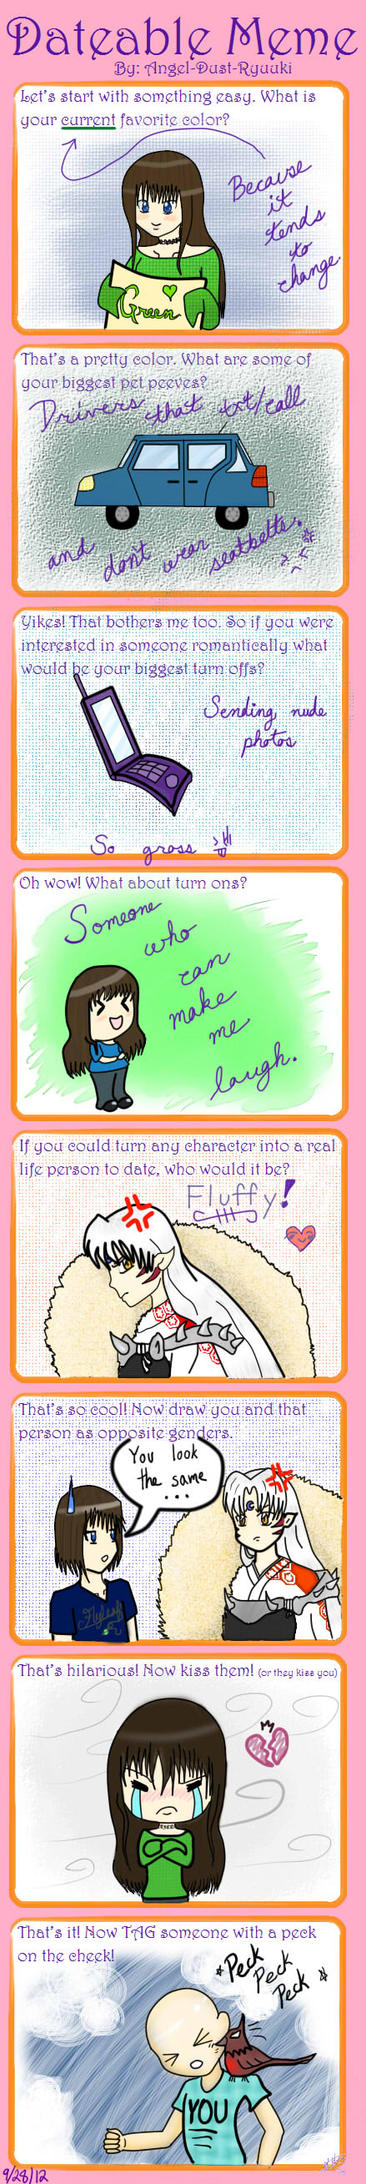 My Datable Meme -filled out- by Angel-Dust-Ryuuki